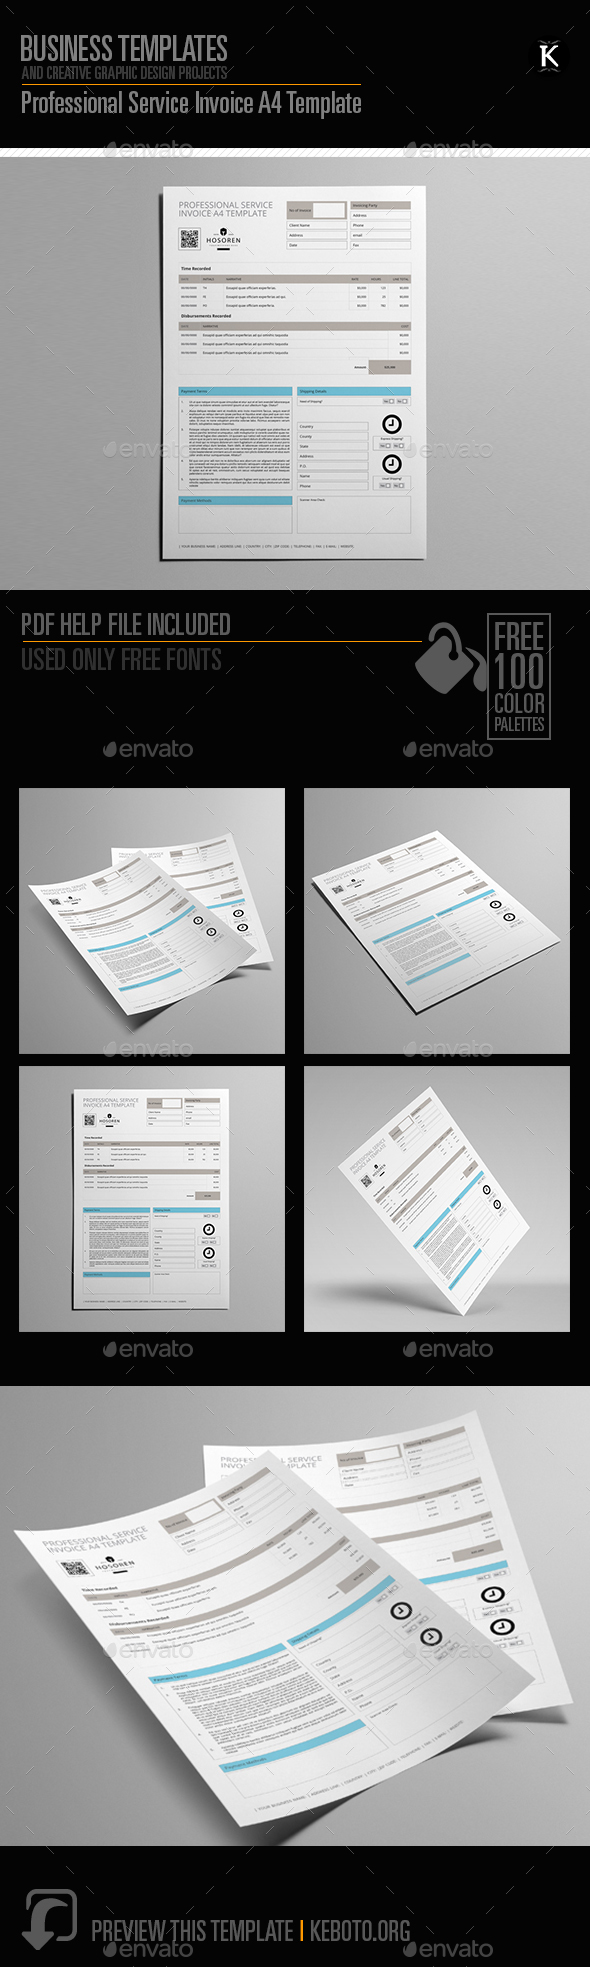 Professional Service Invoice A4 Template - Miscellaneous Print Templates